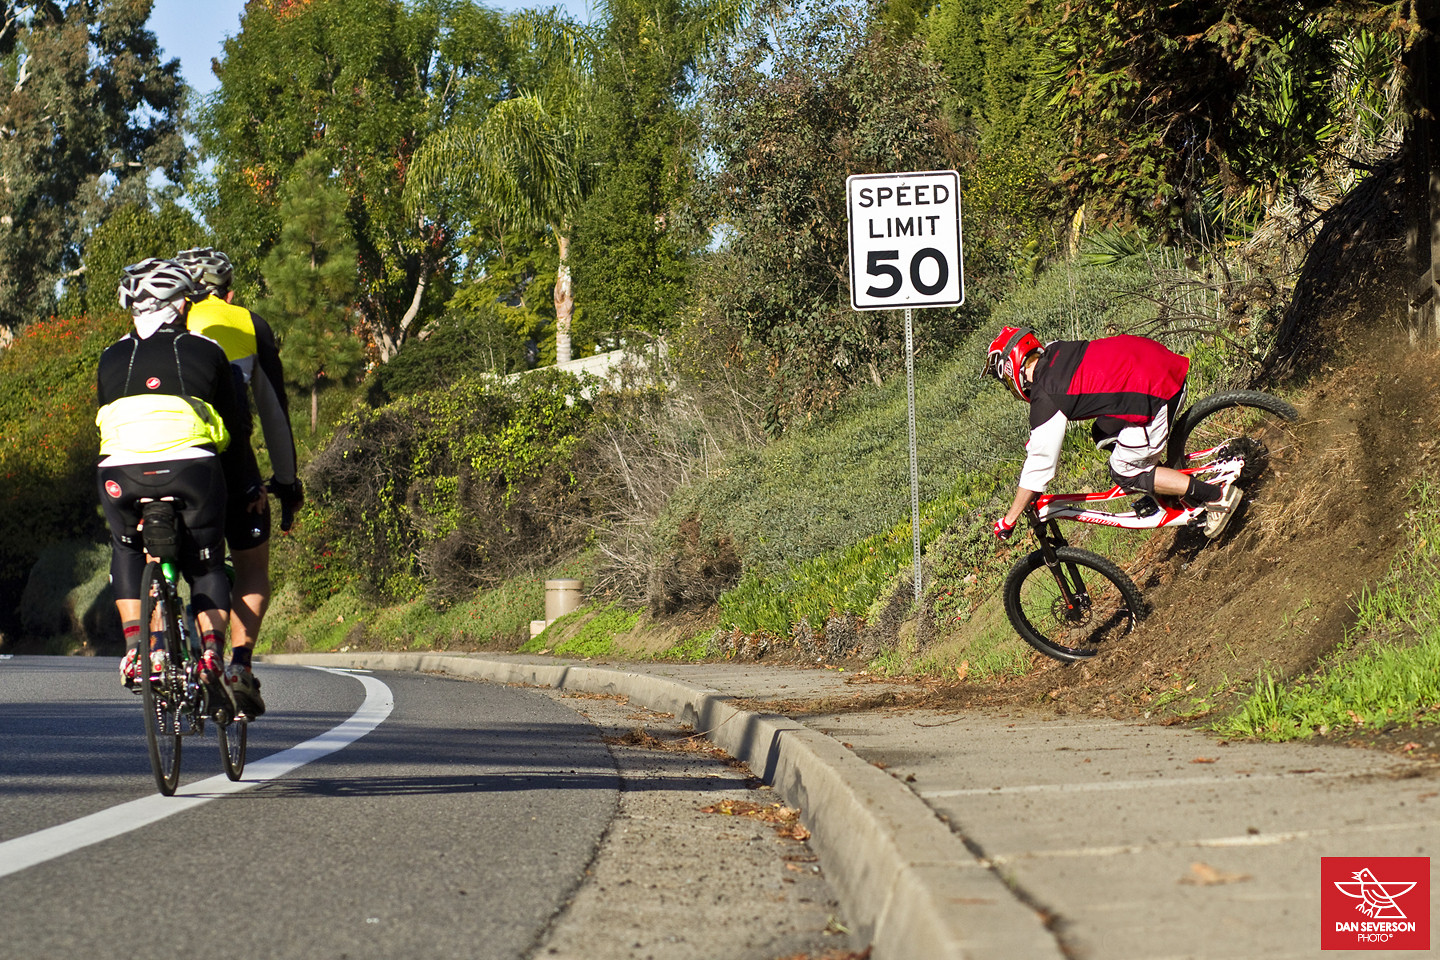 Take'n it to the streets! - danseverson photo - Mountain Biking Pictures - Vital MTB